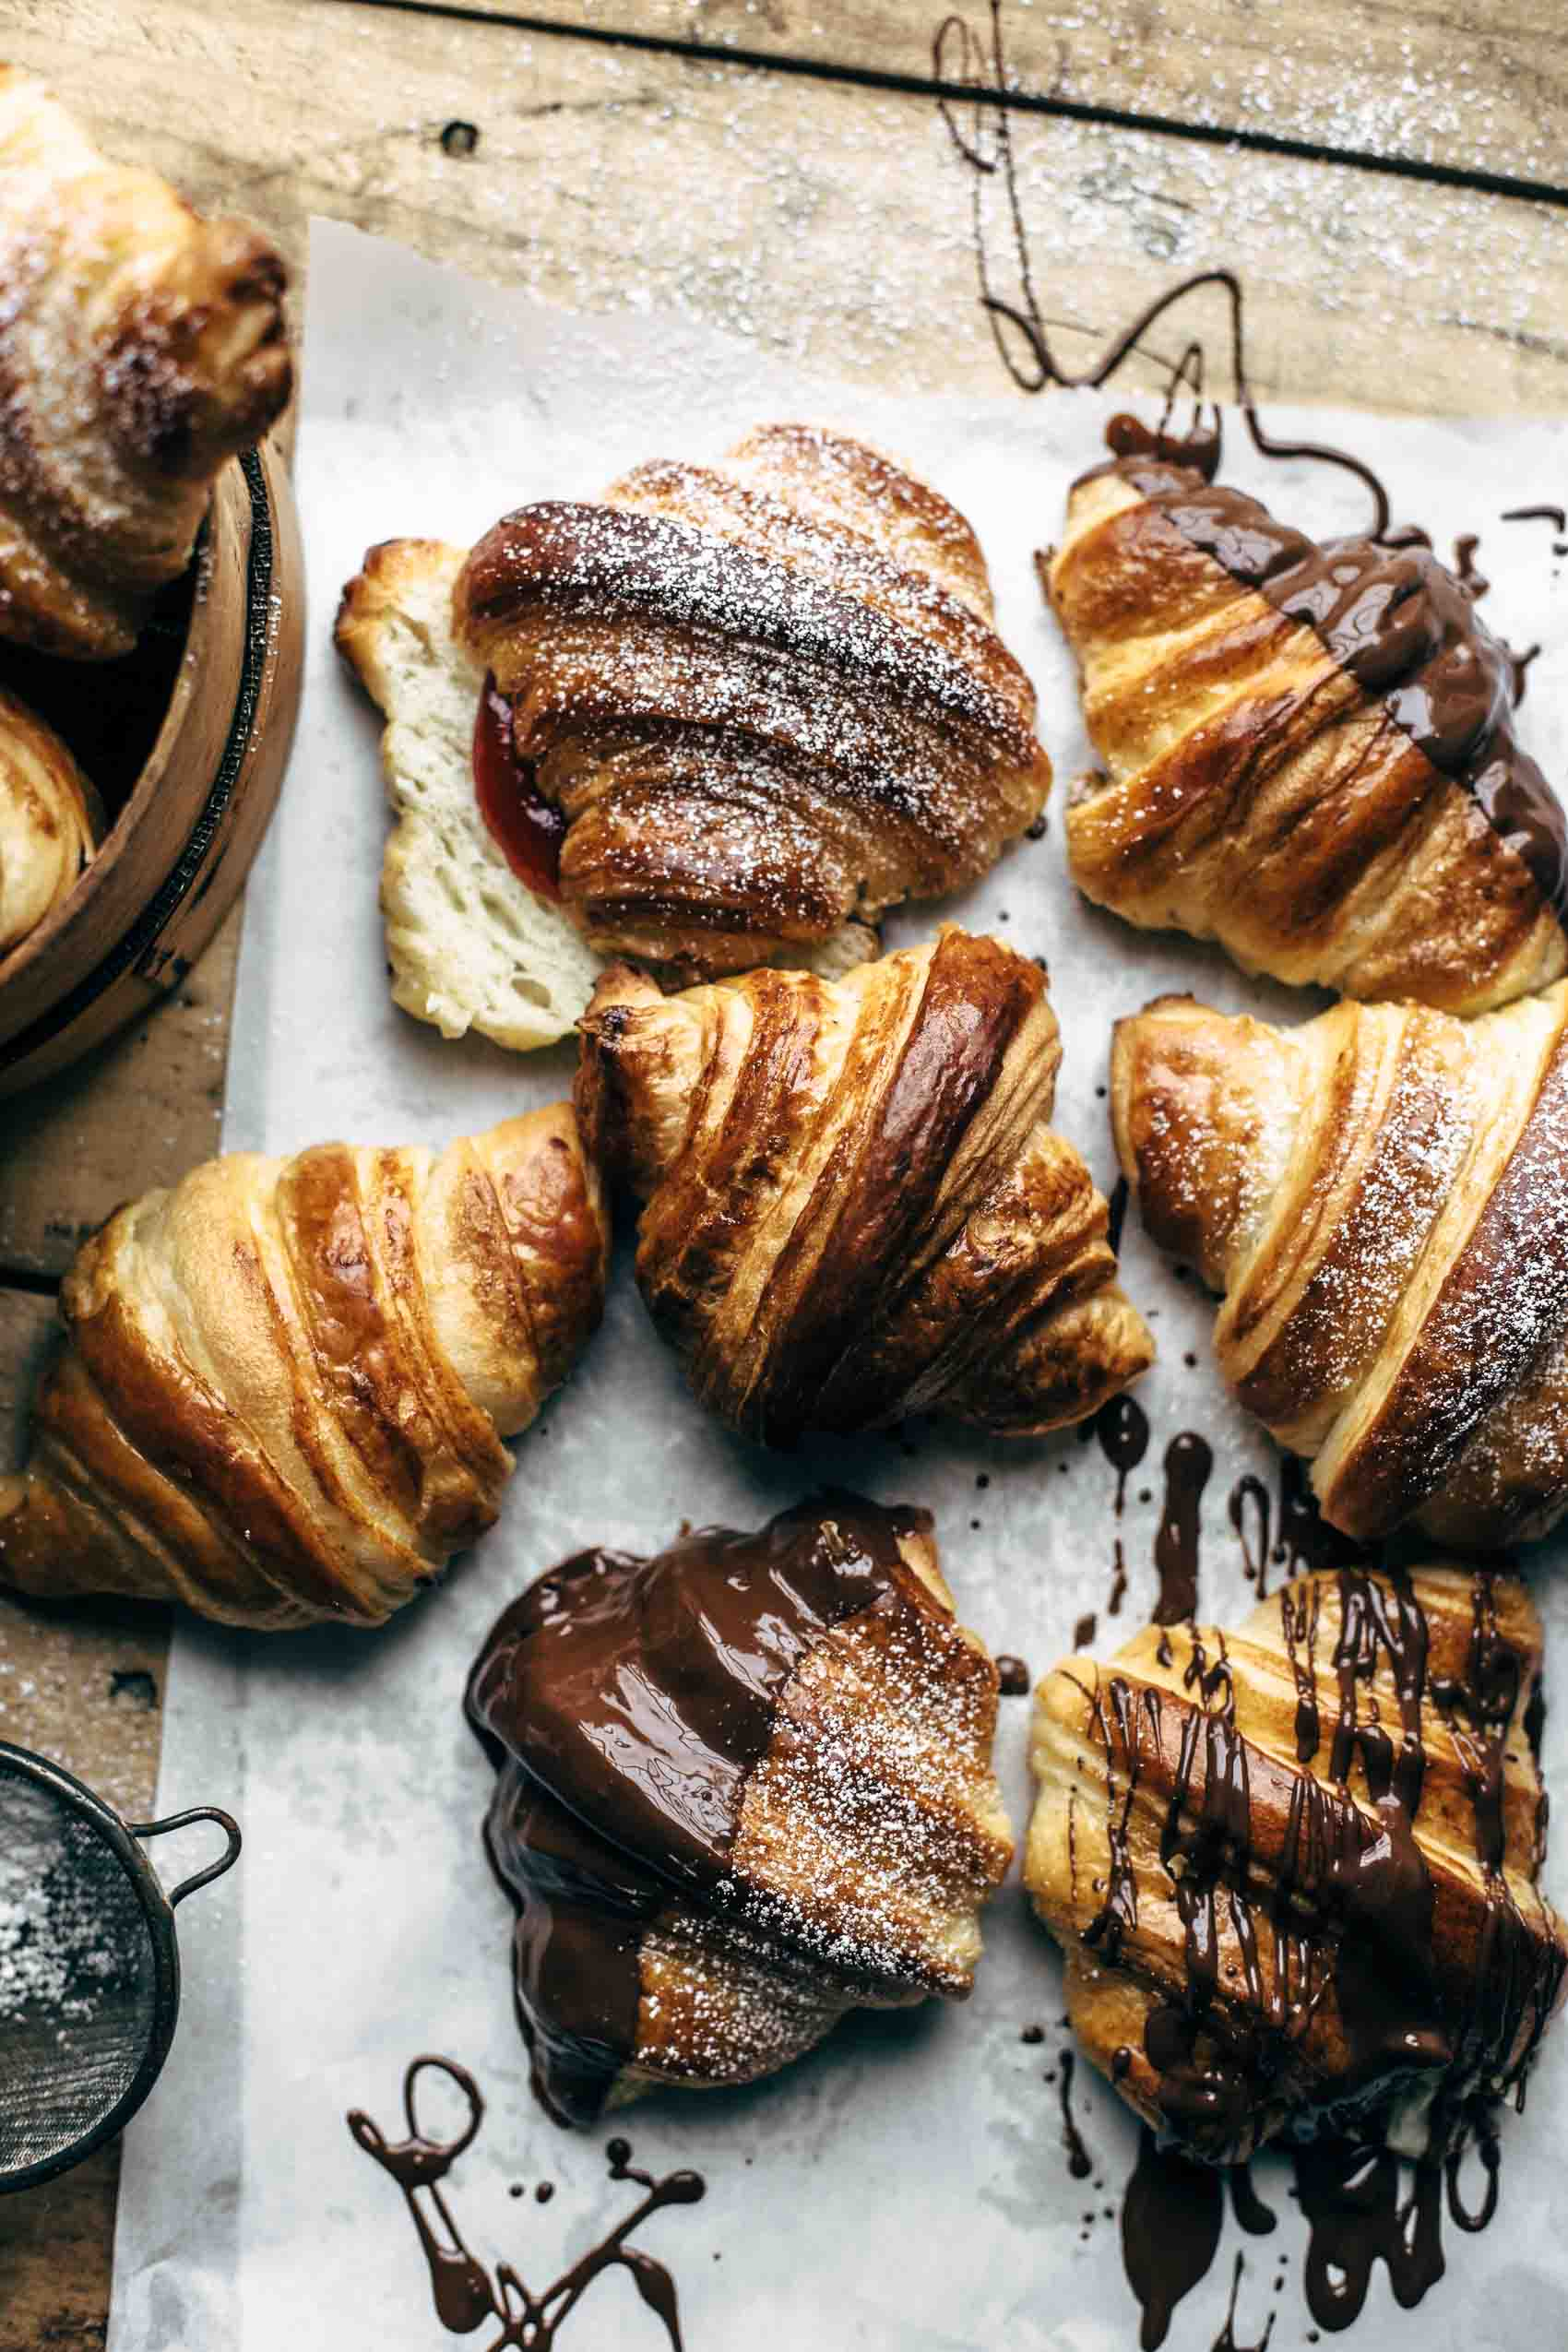 Baked croissants topped with powdered sugar and some dipped in chocolate on white paper